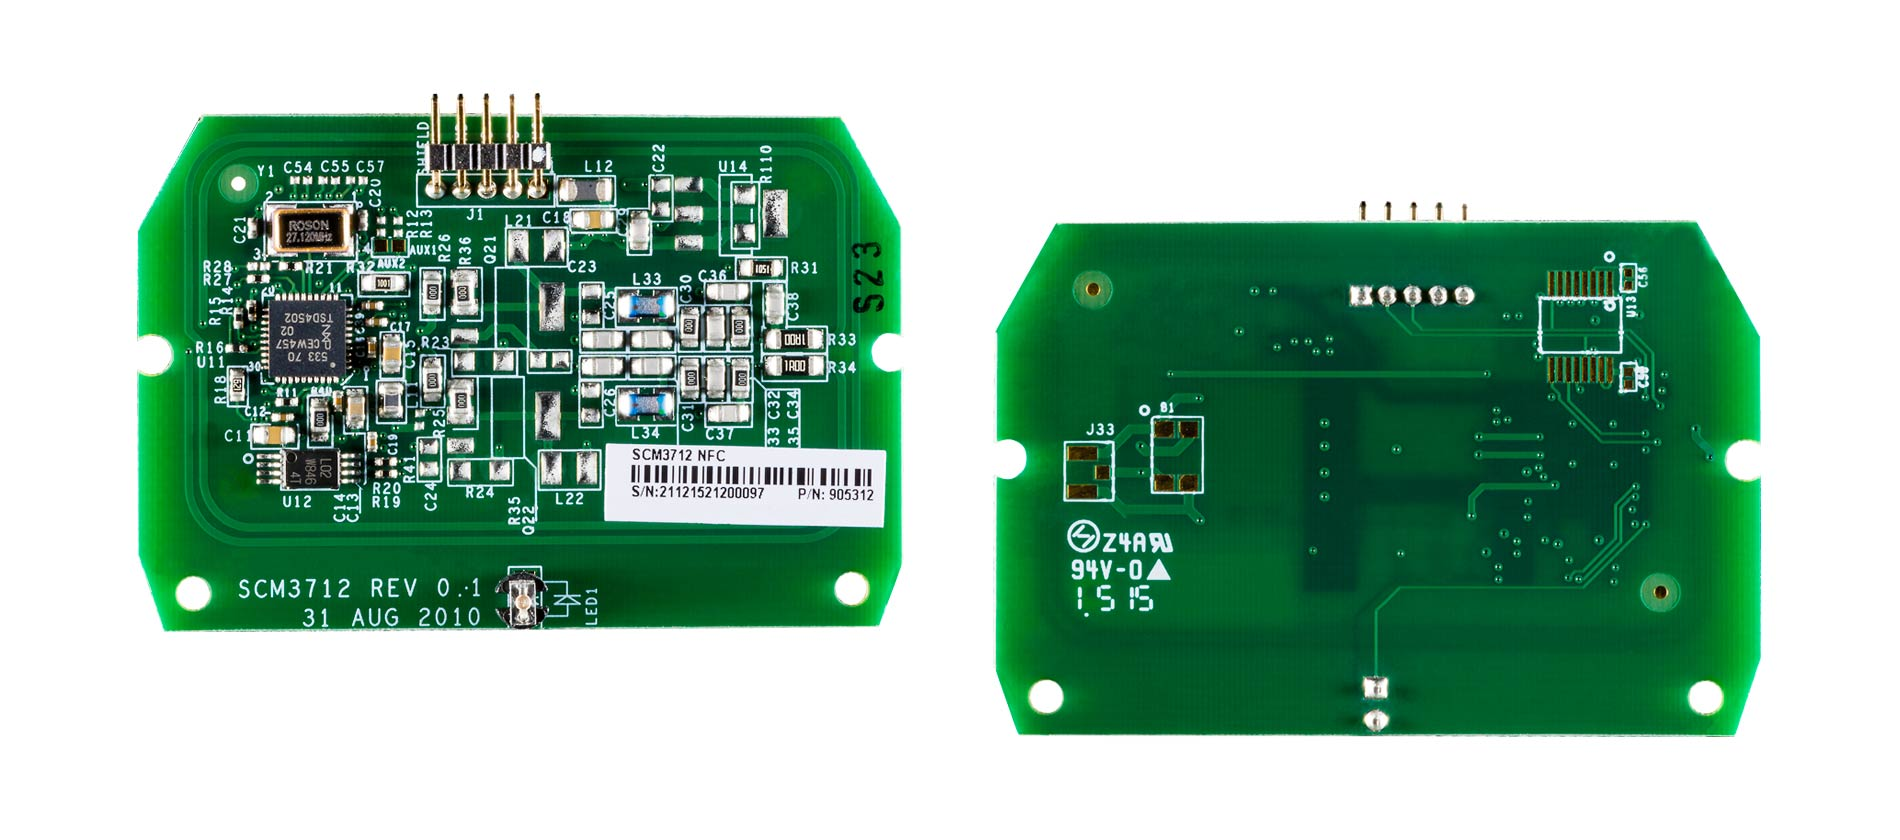 Identiv SCM3712 Contactless Reader Board Family